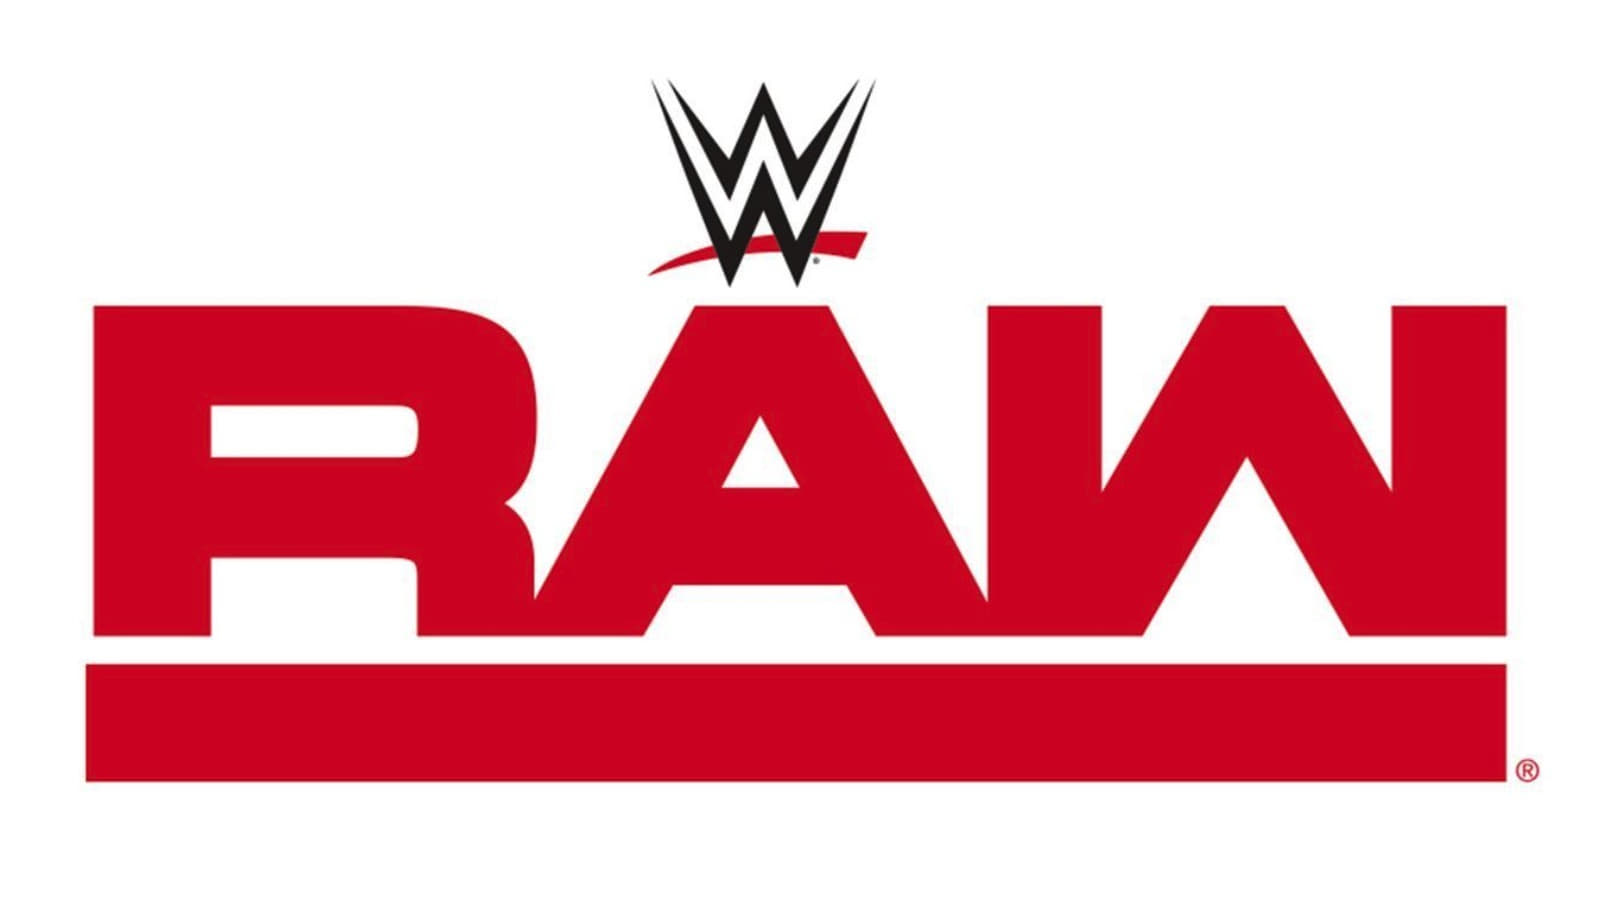 WWE Raw - Season 22 Episode 15 : April 14, 2014 (Birmingham, AL)